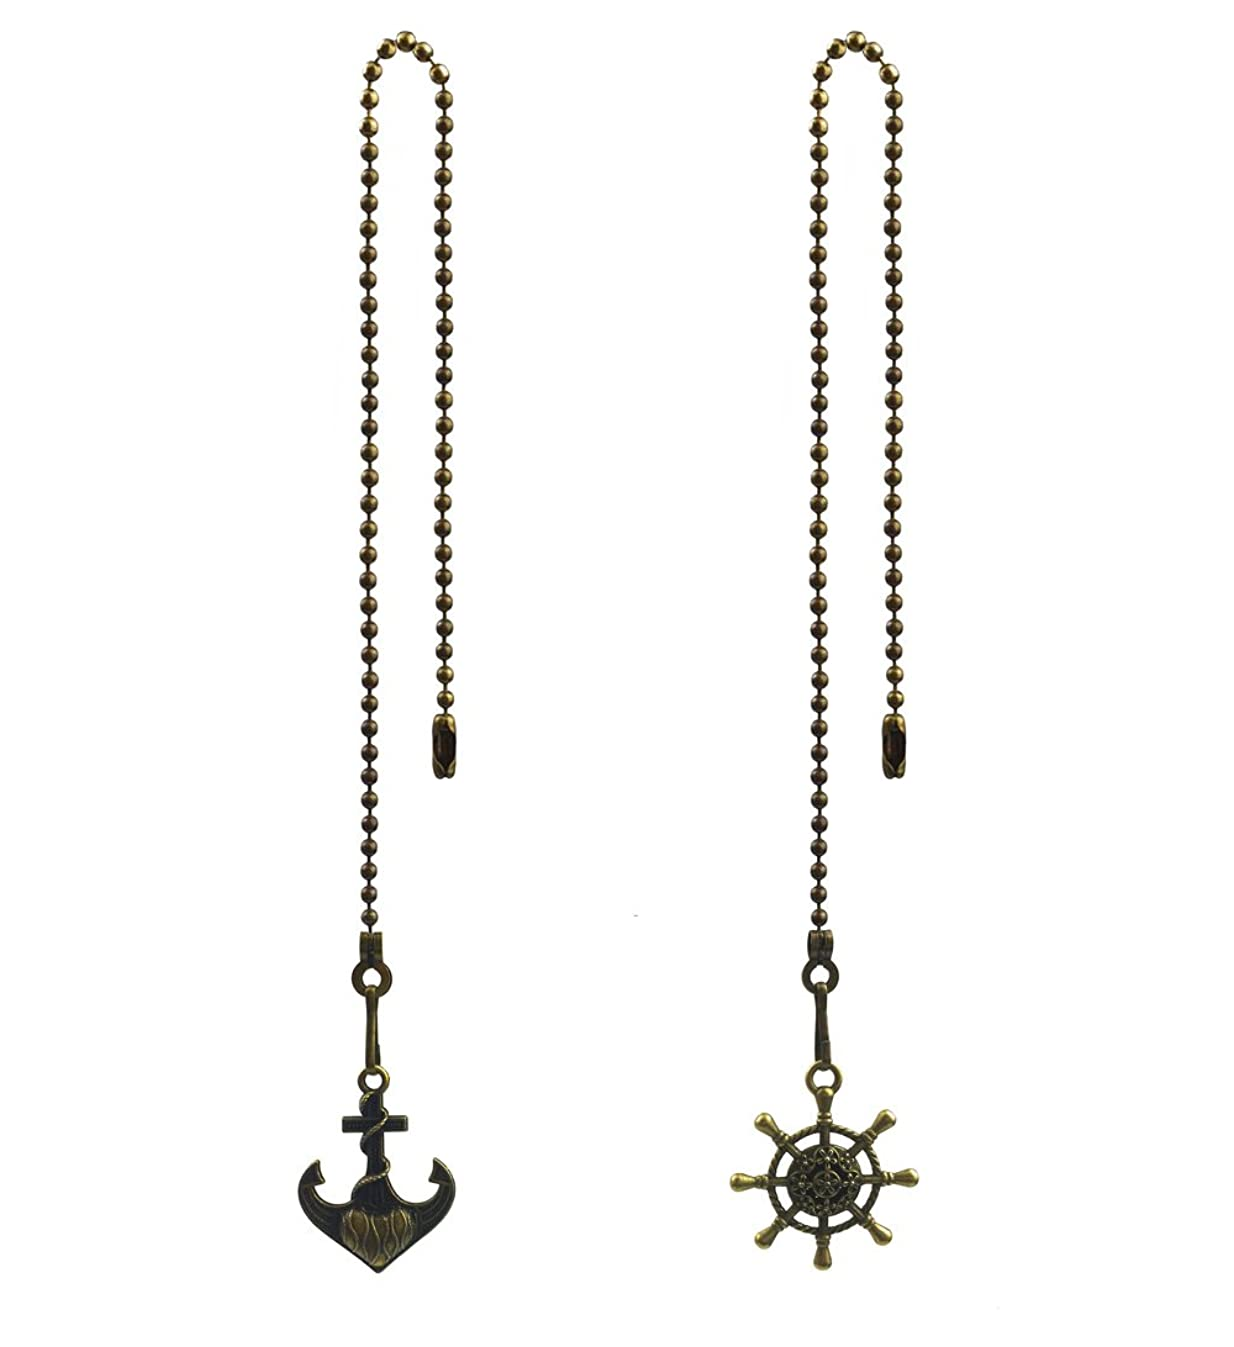 Hyamass 2pcs Vintage Anchor and Wheel Charm Pendant Ceiling Fan Danglers Fan Pulls Chain Extender with Ball Chain Connector